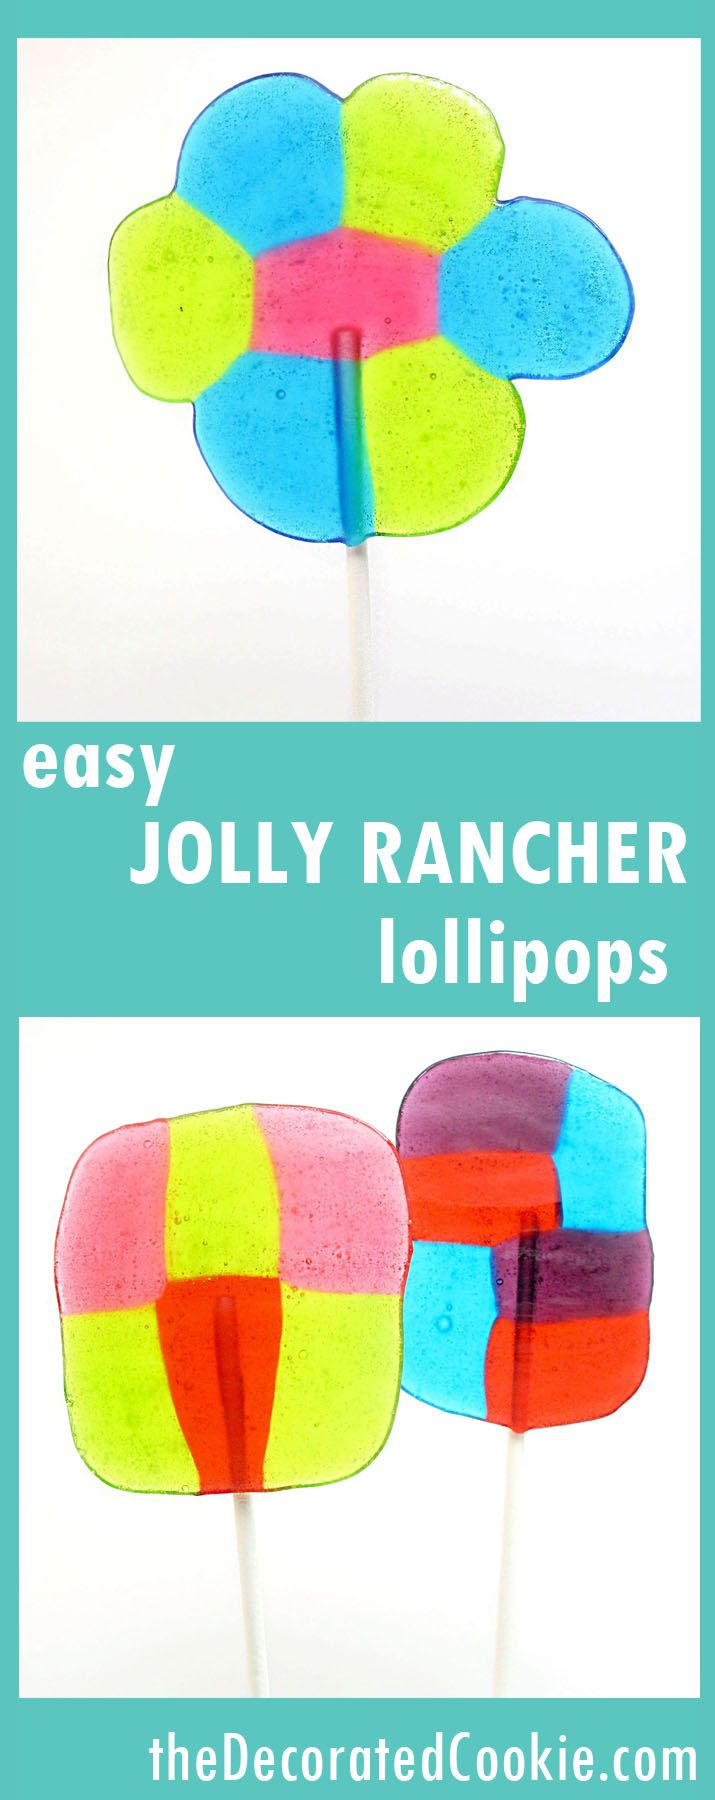 easy JOLLY RANCHER lollipops